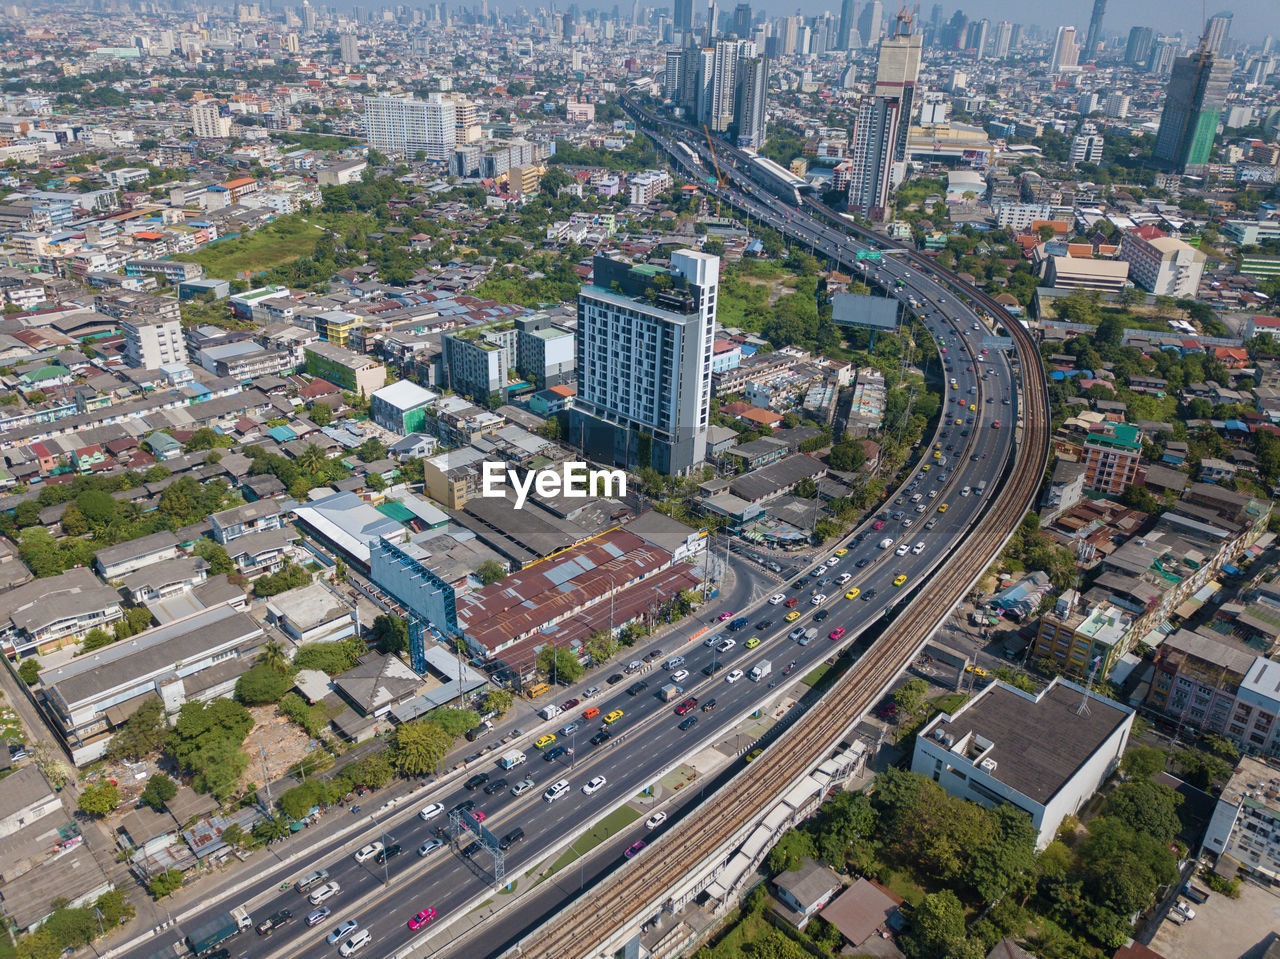 city, cityscape, high angle view, aerial view, architecture, skyscraper, transportation, modern, building exterior, downtown district, day, outdoors, urban skyline, no people, built structure, sky